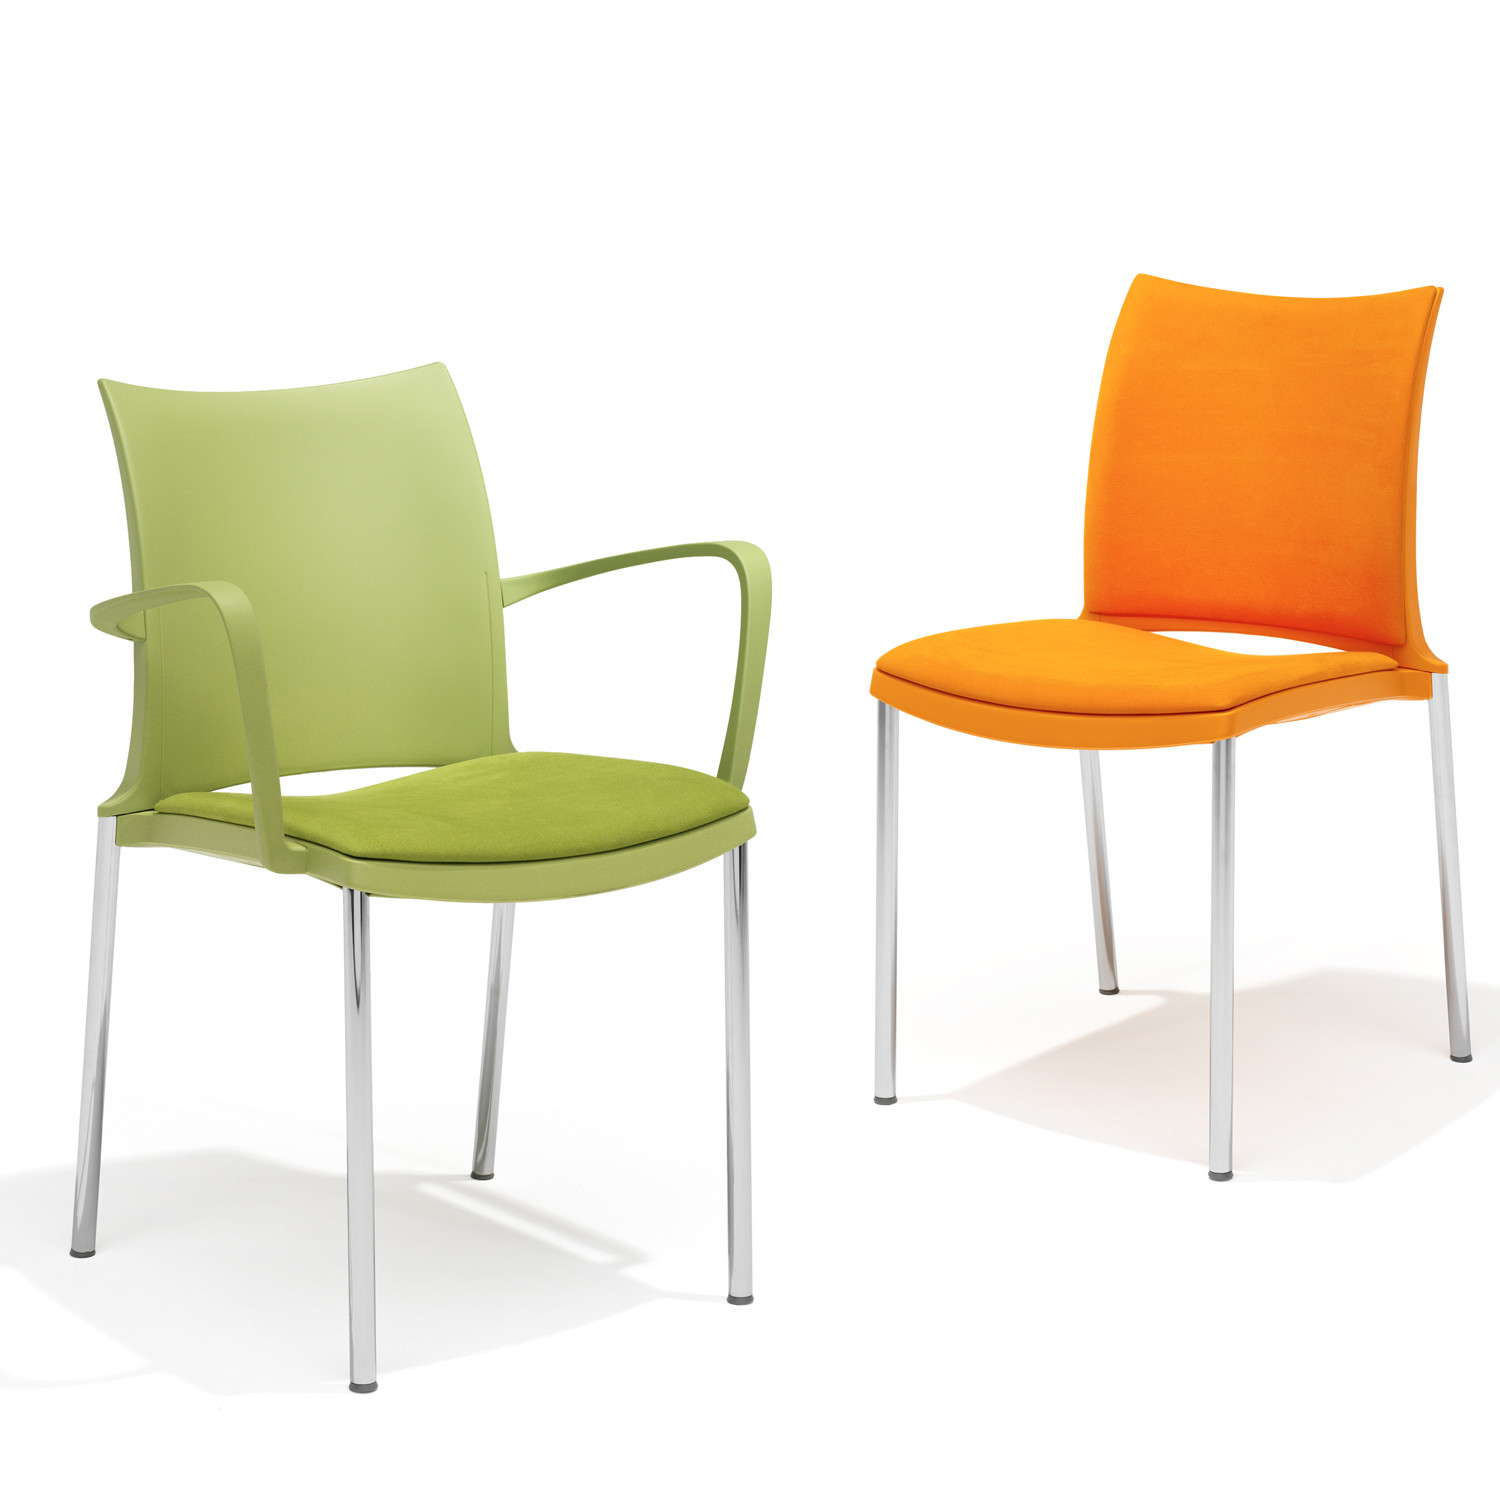 2200 Hola Chairs are available with or without armrests